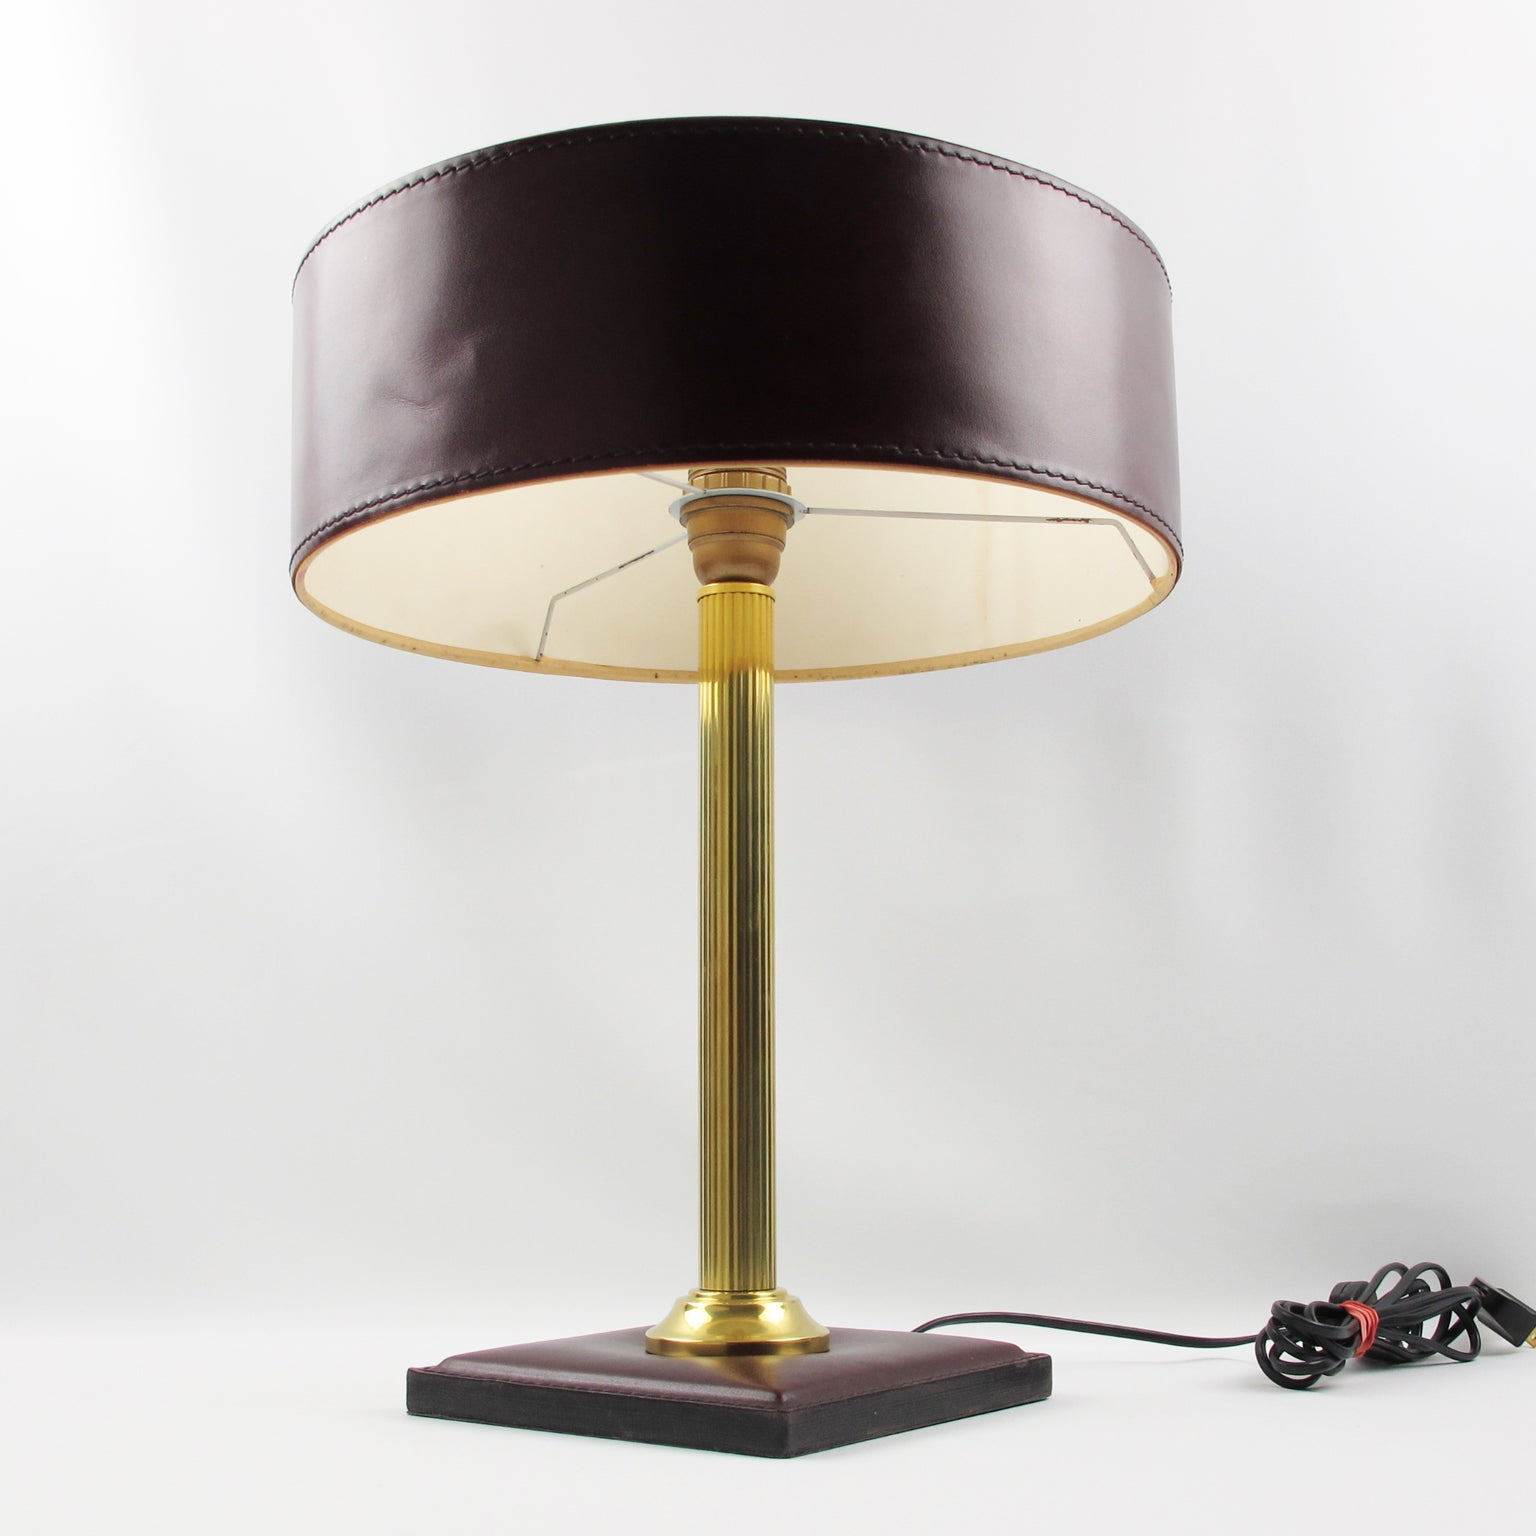 crafted shade painting andhra lamp hand shades from with leather pradesh pin